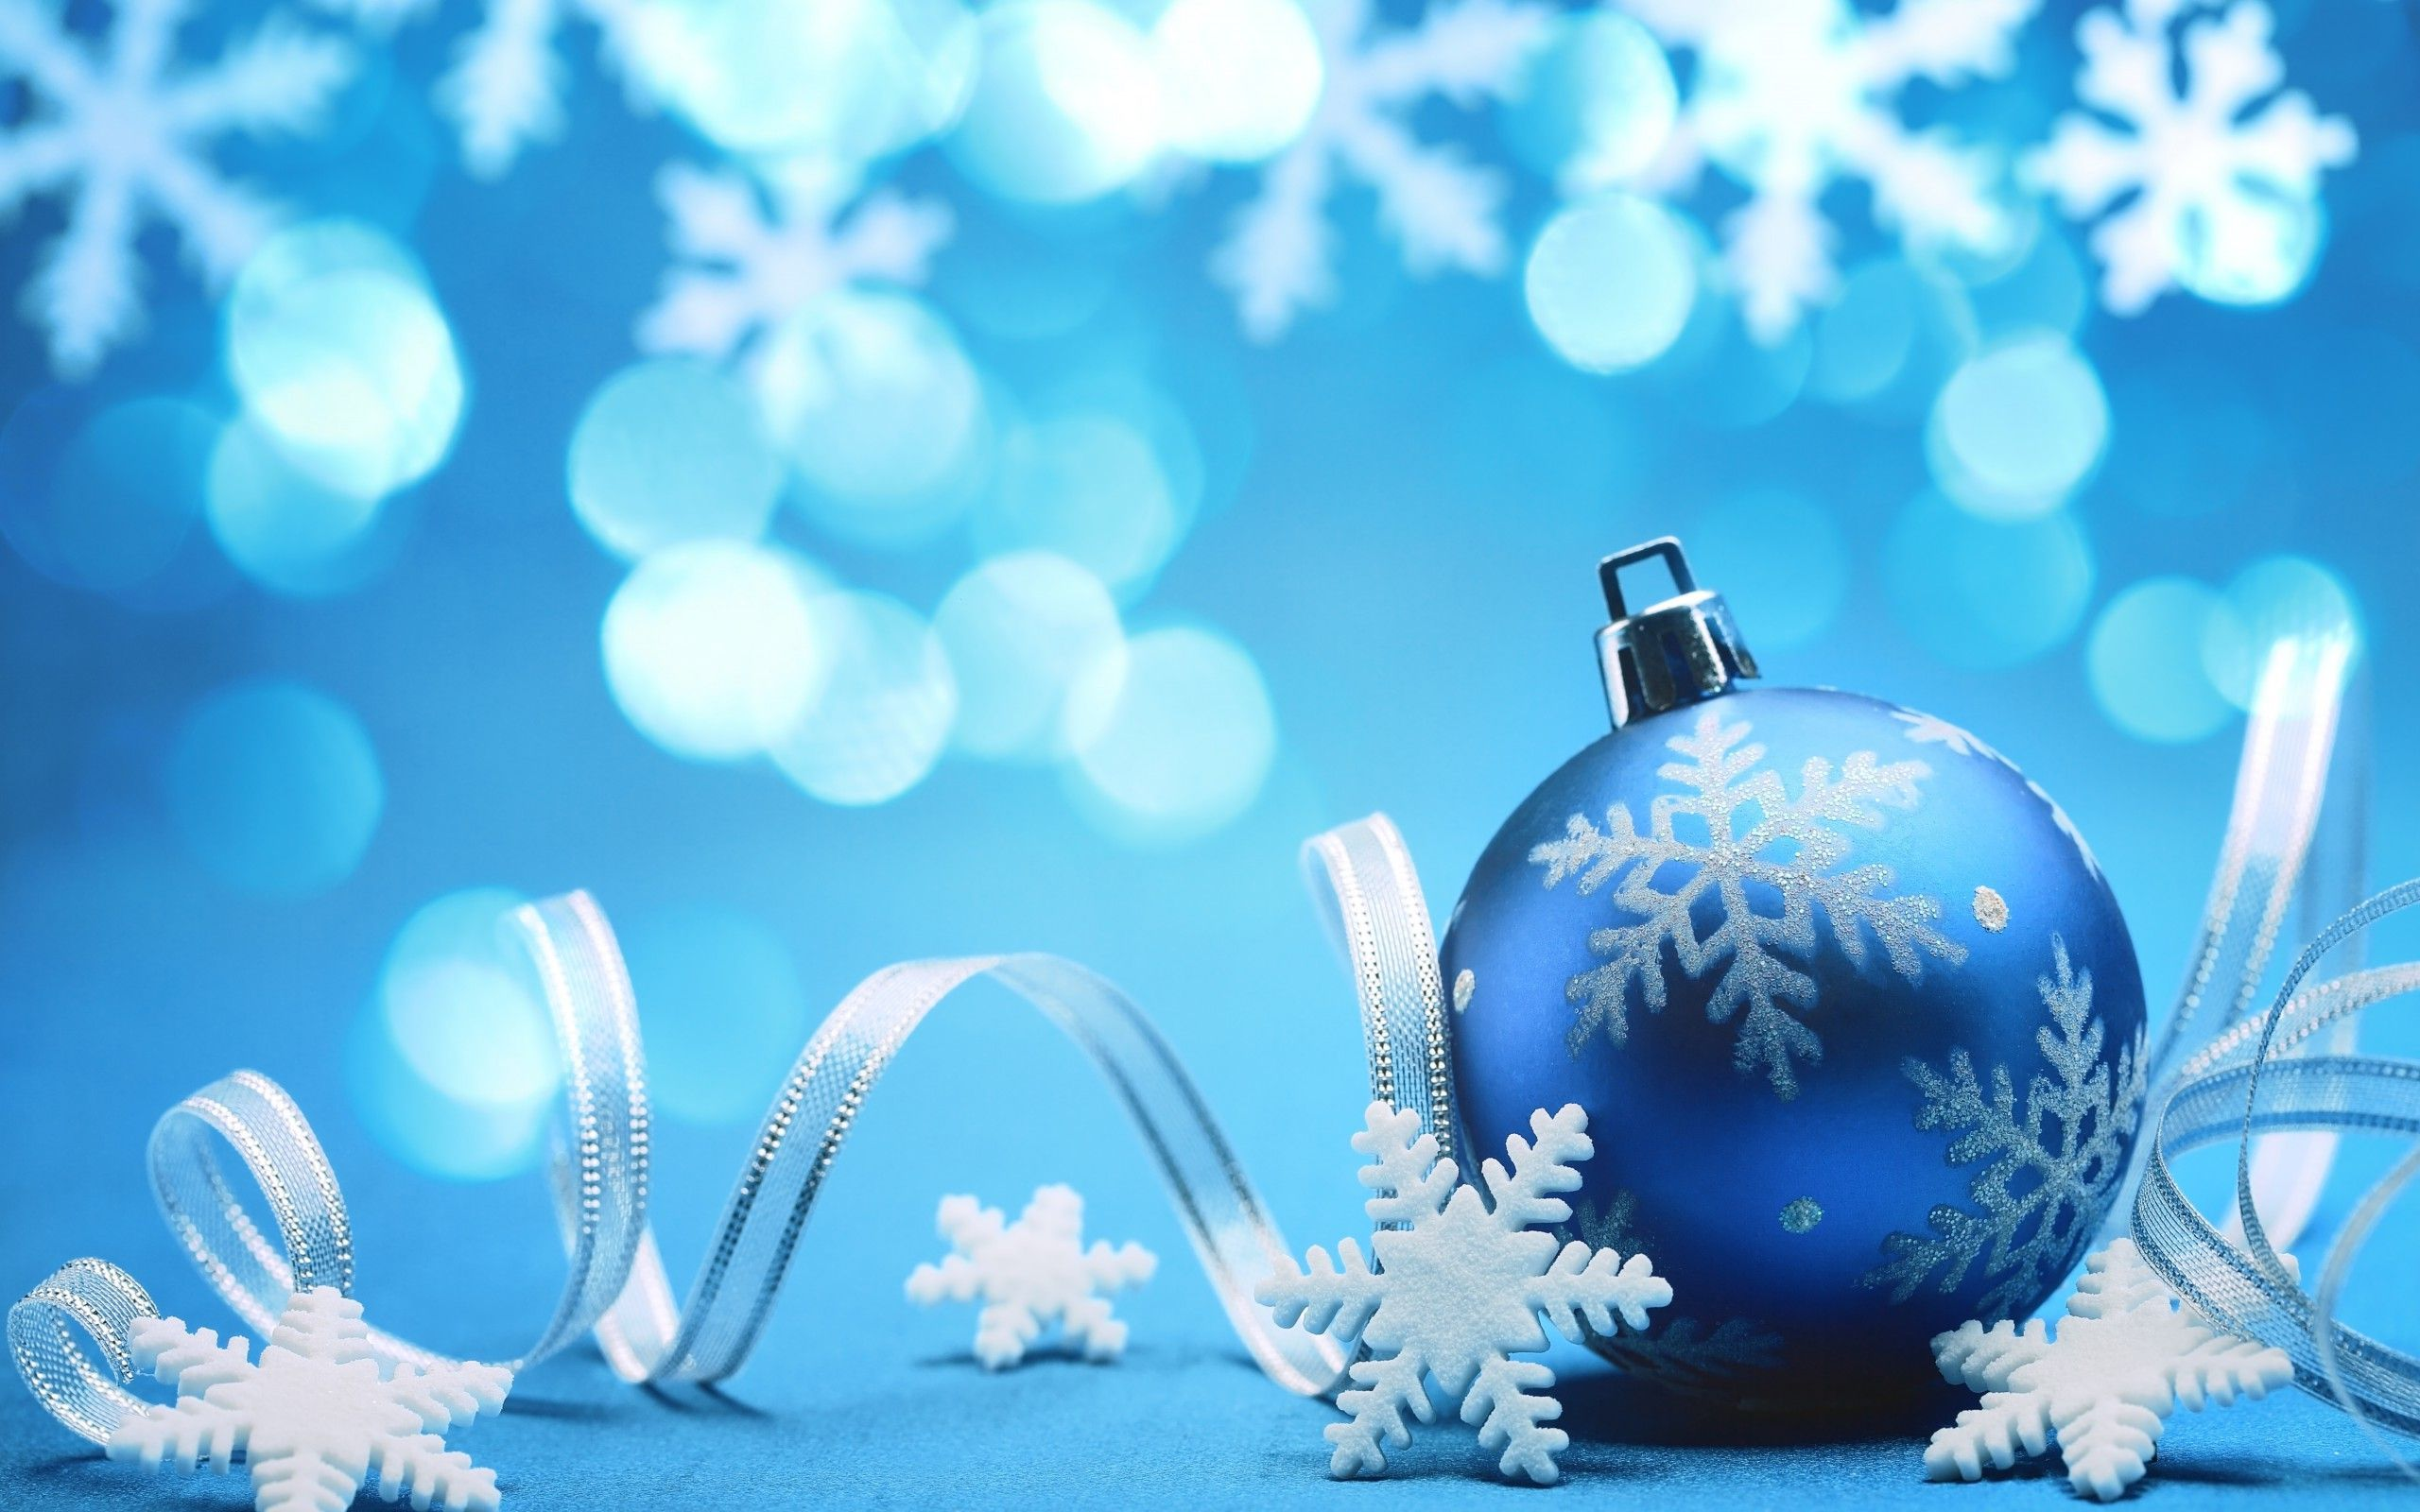 Blue Christmas decorations wallpaper 2560x1600